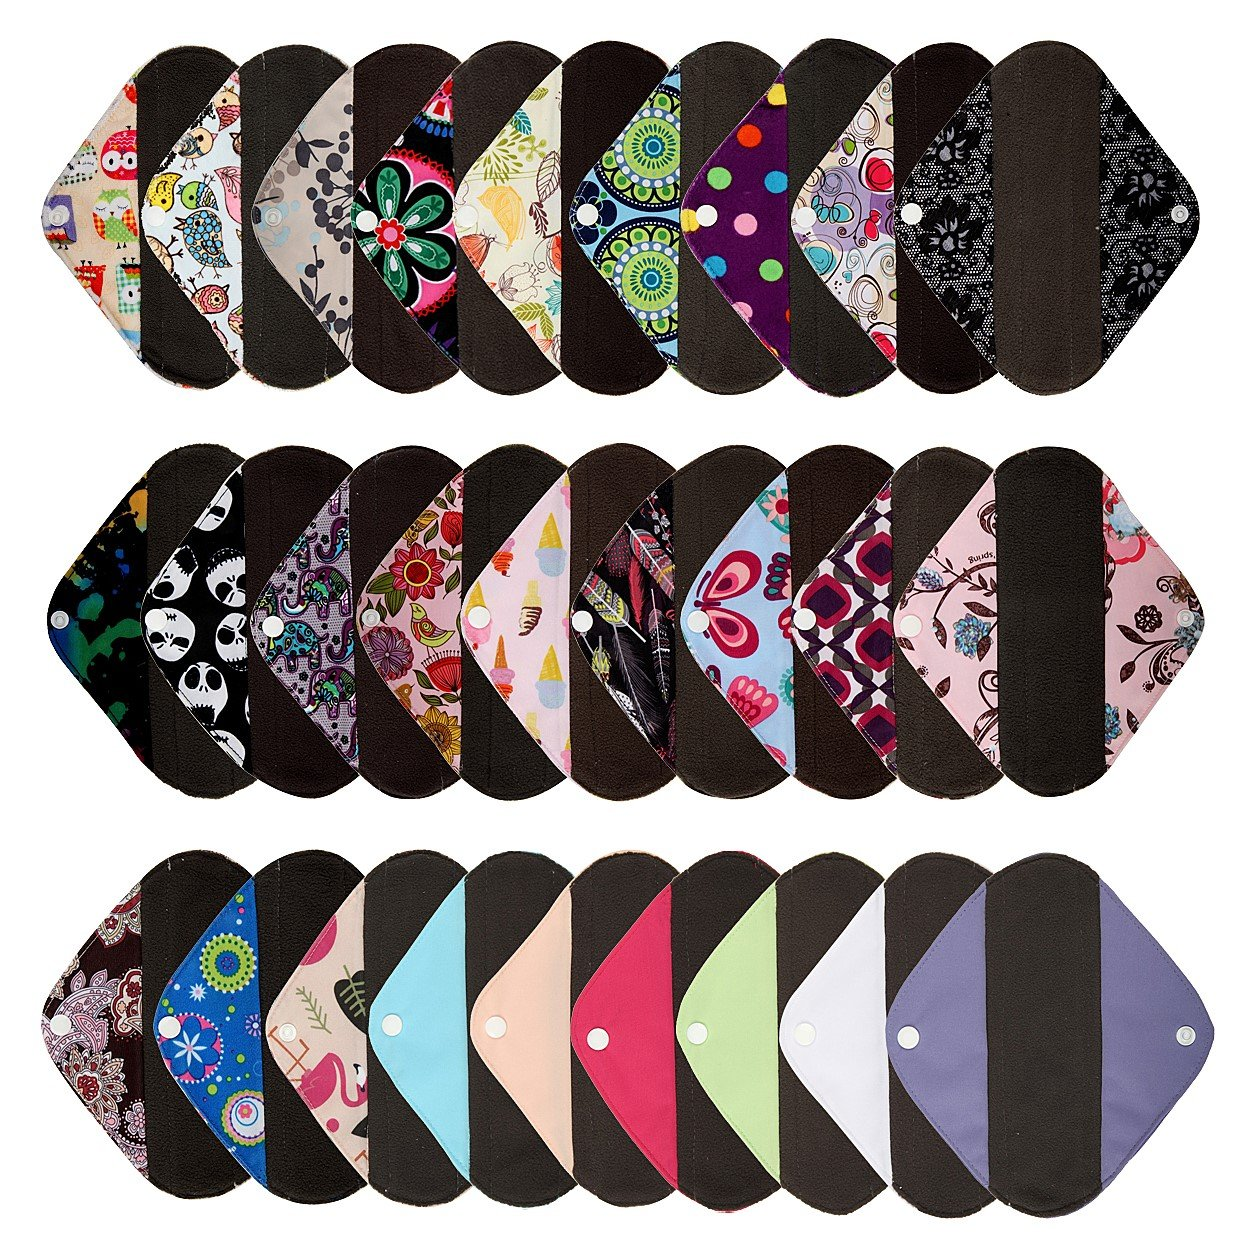 6 Pieces 8 Inch Charcoal Bamboo Mama Cloth/ Menstrual Pads/ Reusable Sanitary Pads / Panty Liners - You Choose 6 From 19 Designs and Email to Me